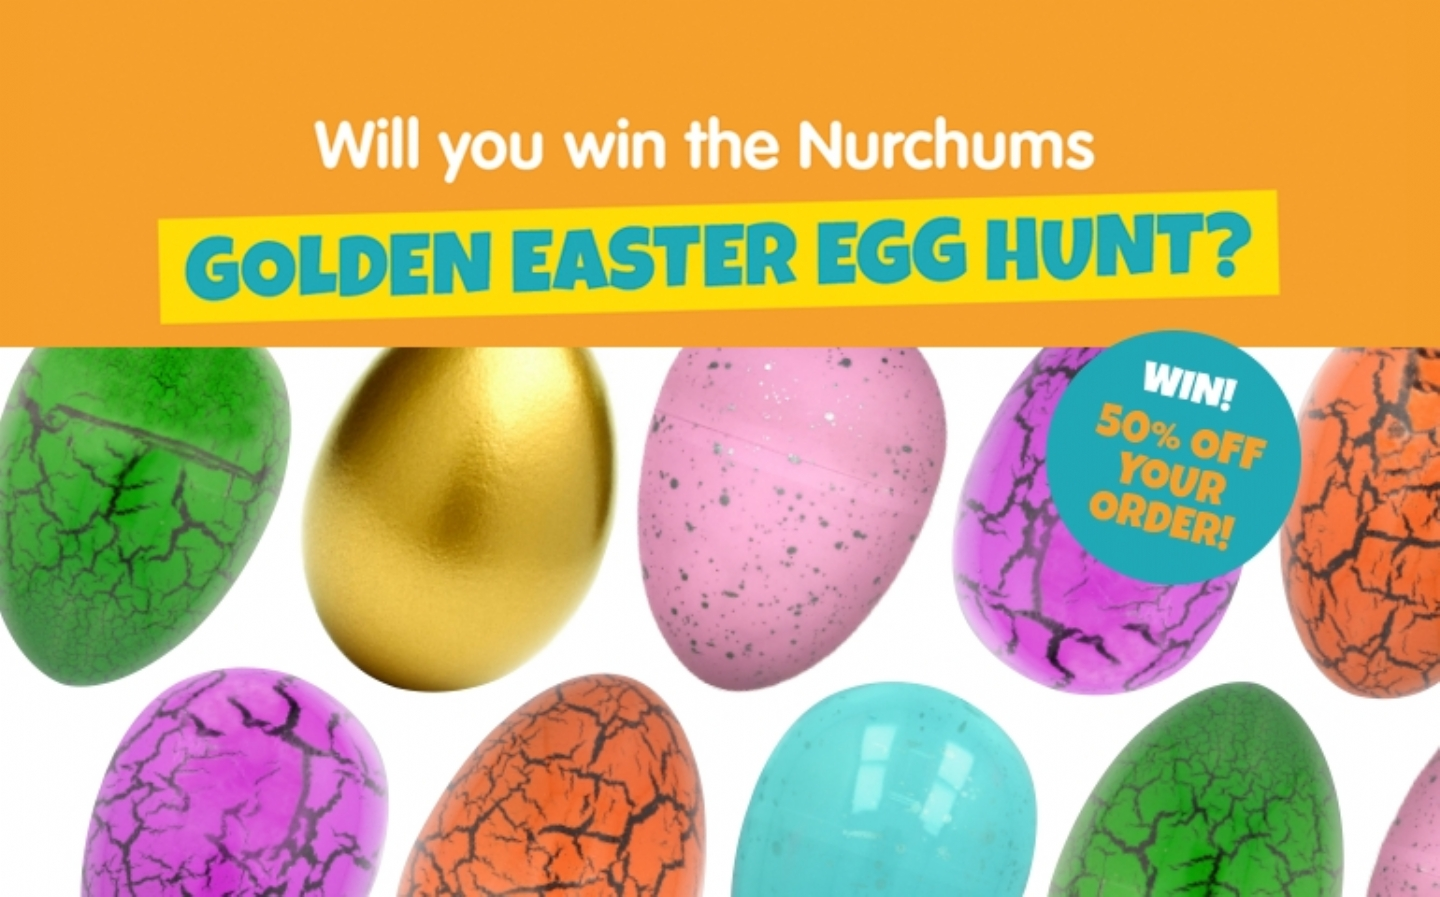 Will you win the Nurchums Golden Easter Egg Hunt?